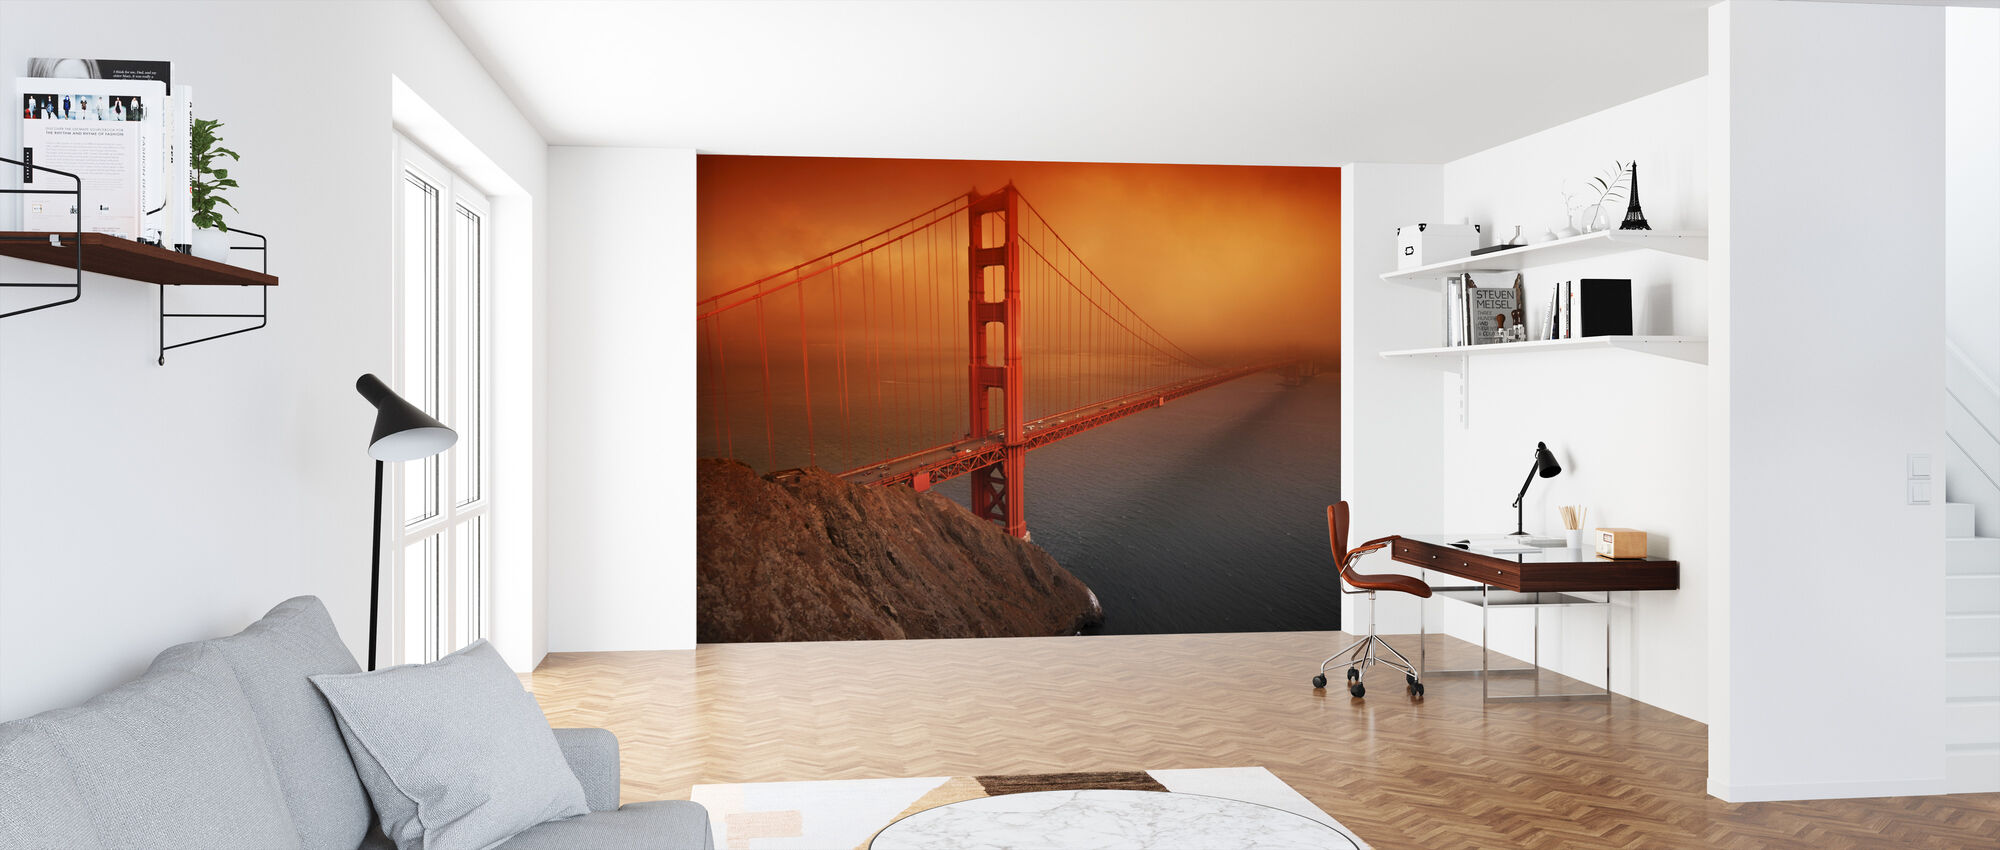 Golden Gate - Wallpaper - Office